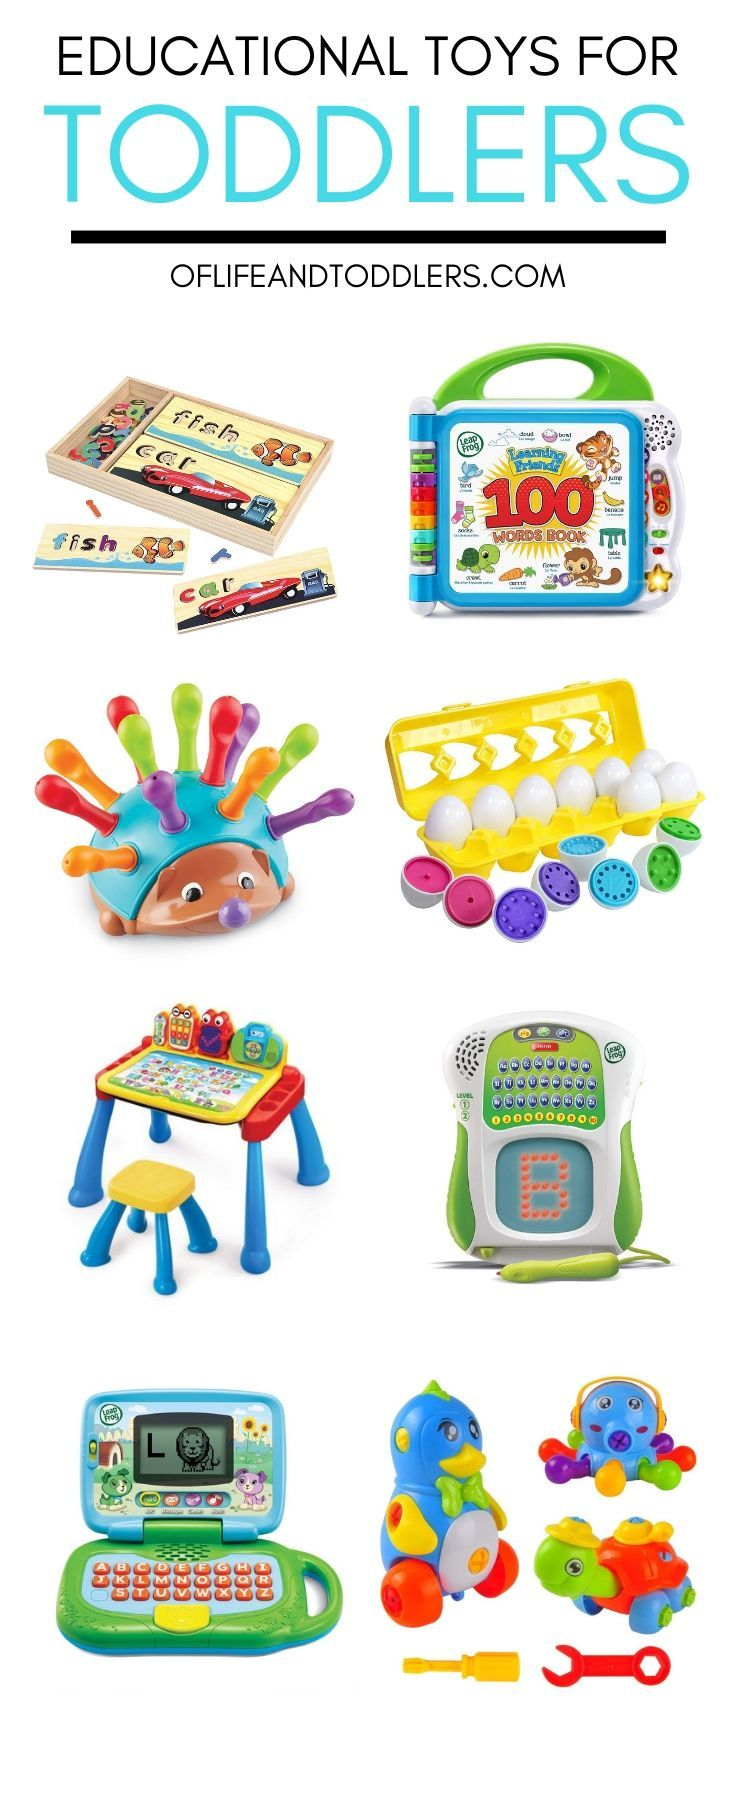 The 10 Best Educational Toys for Toddlers to Help Them ...